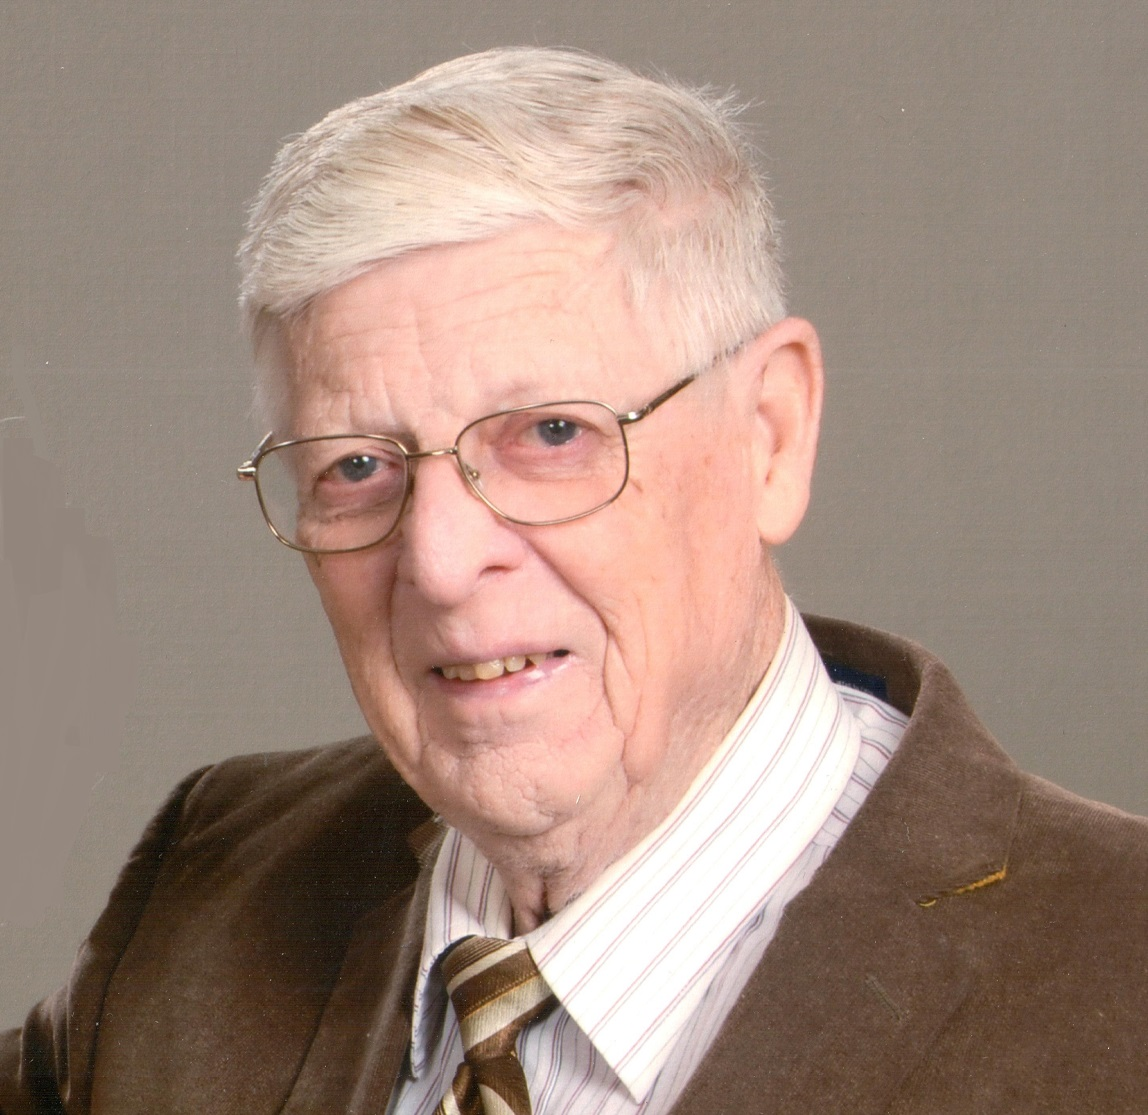 Donald D. Noble, age 82 of Haysville